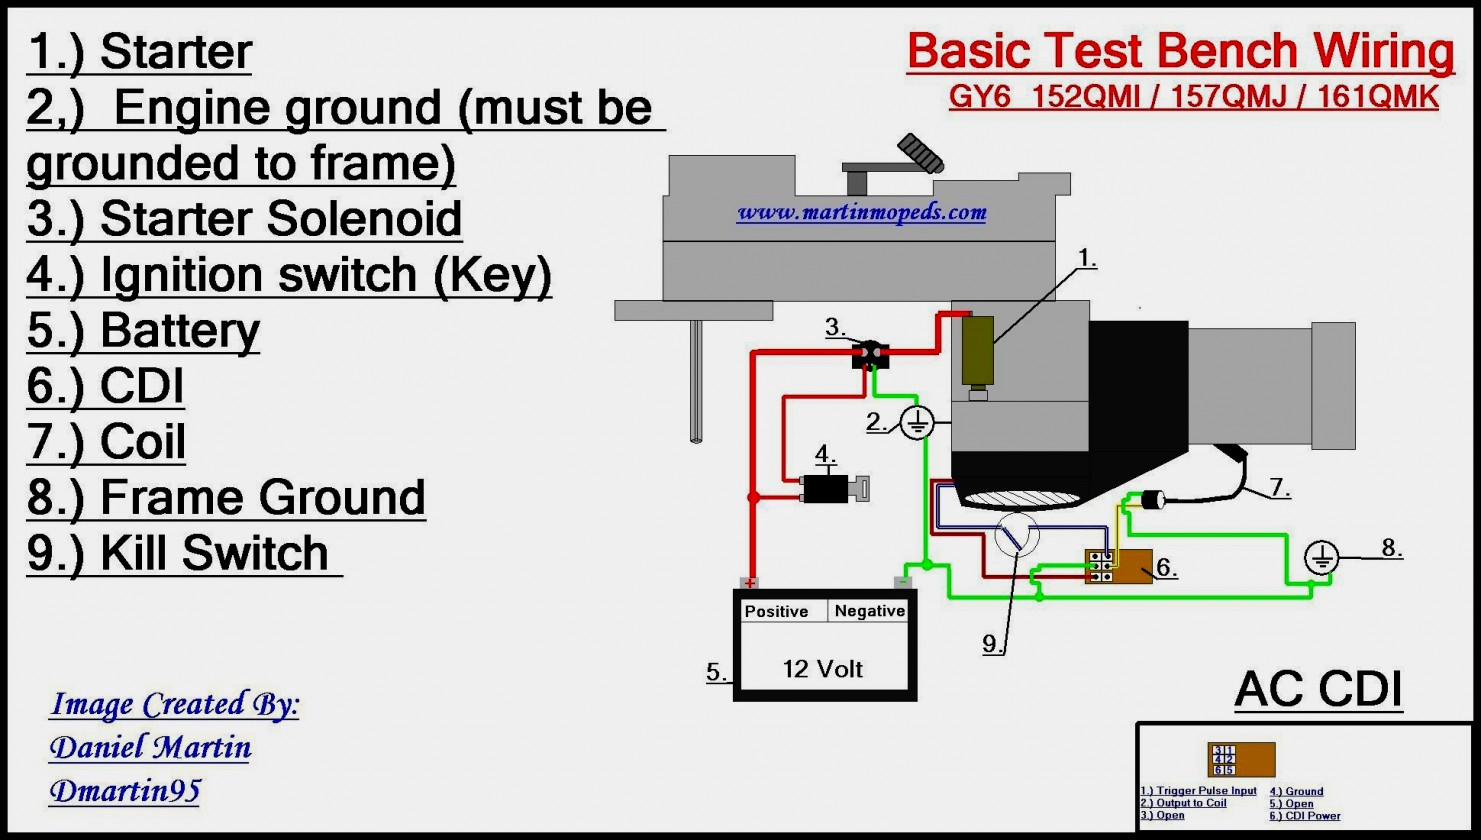 12 Volt Solenoid Wiring Diagram Tags Starter -Cat 5 Wiring Diagram 2 Pair |  Begeboy Wiring Diagram Source | 12 Volt Solenoid Wiring Diagram Tags Starter |  | Begeboy Wiring Diagram Source